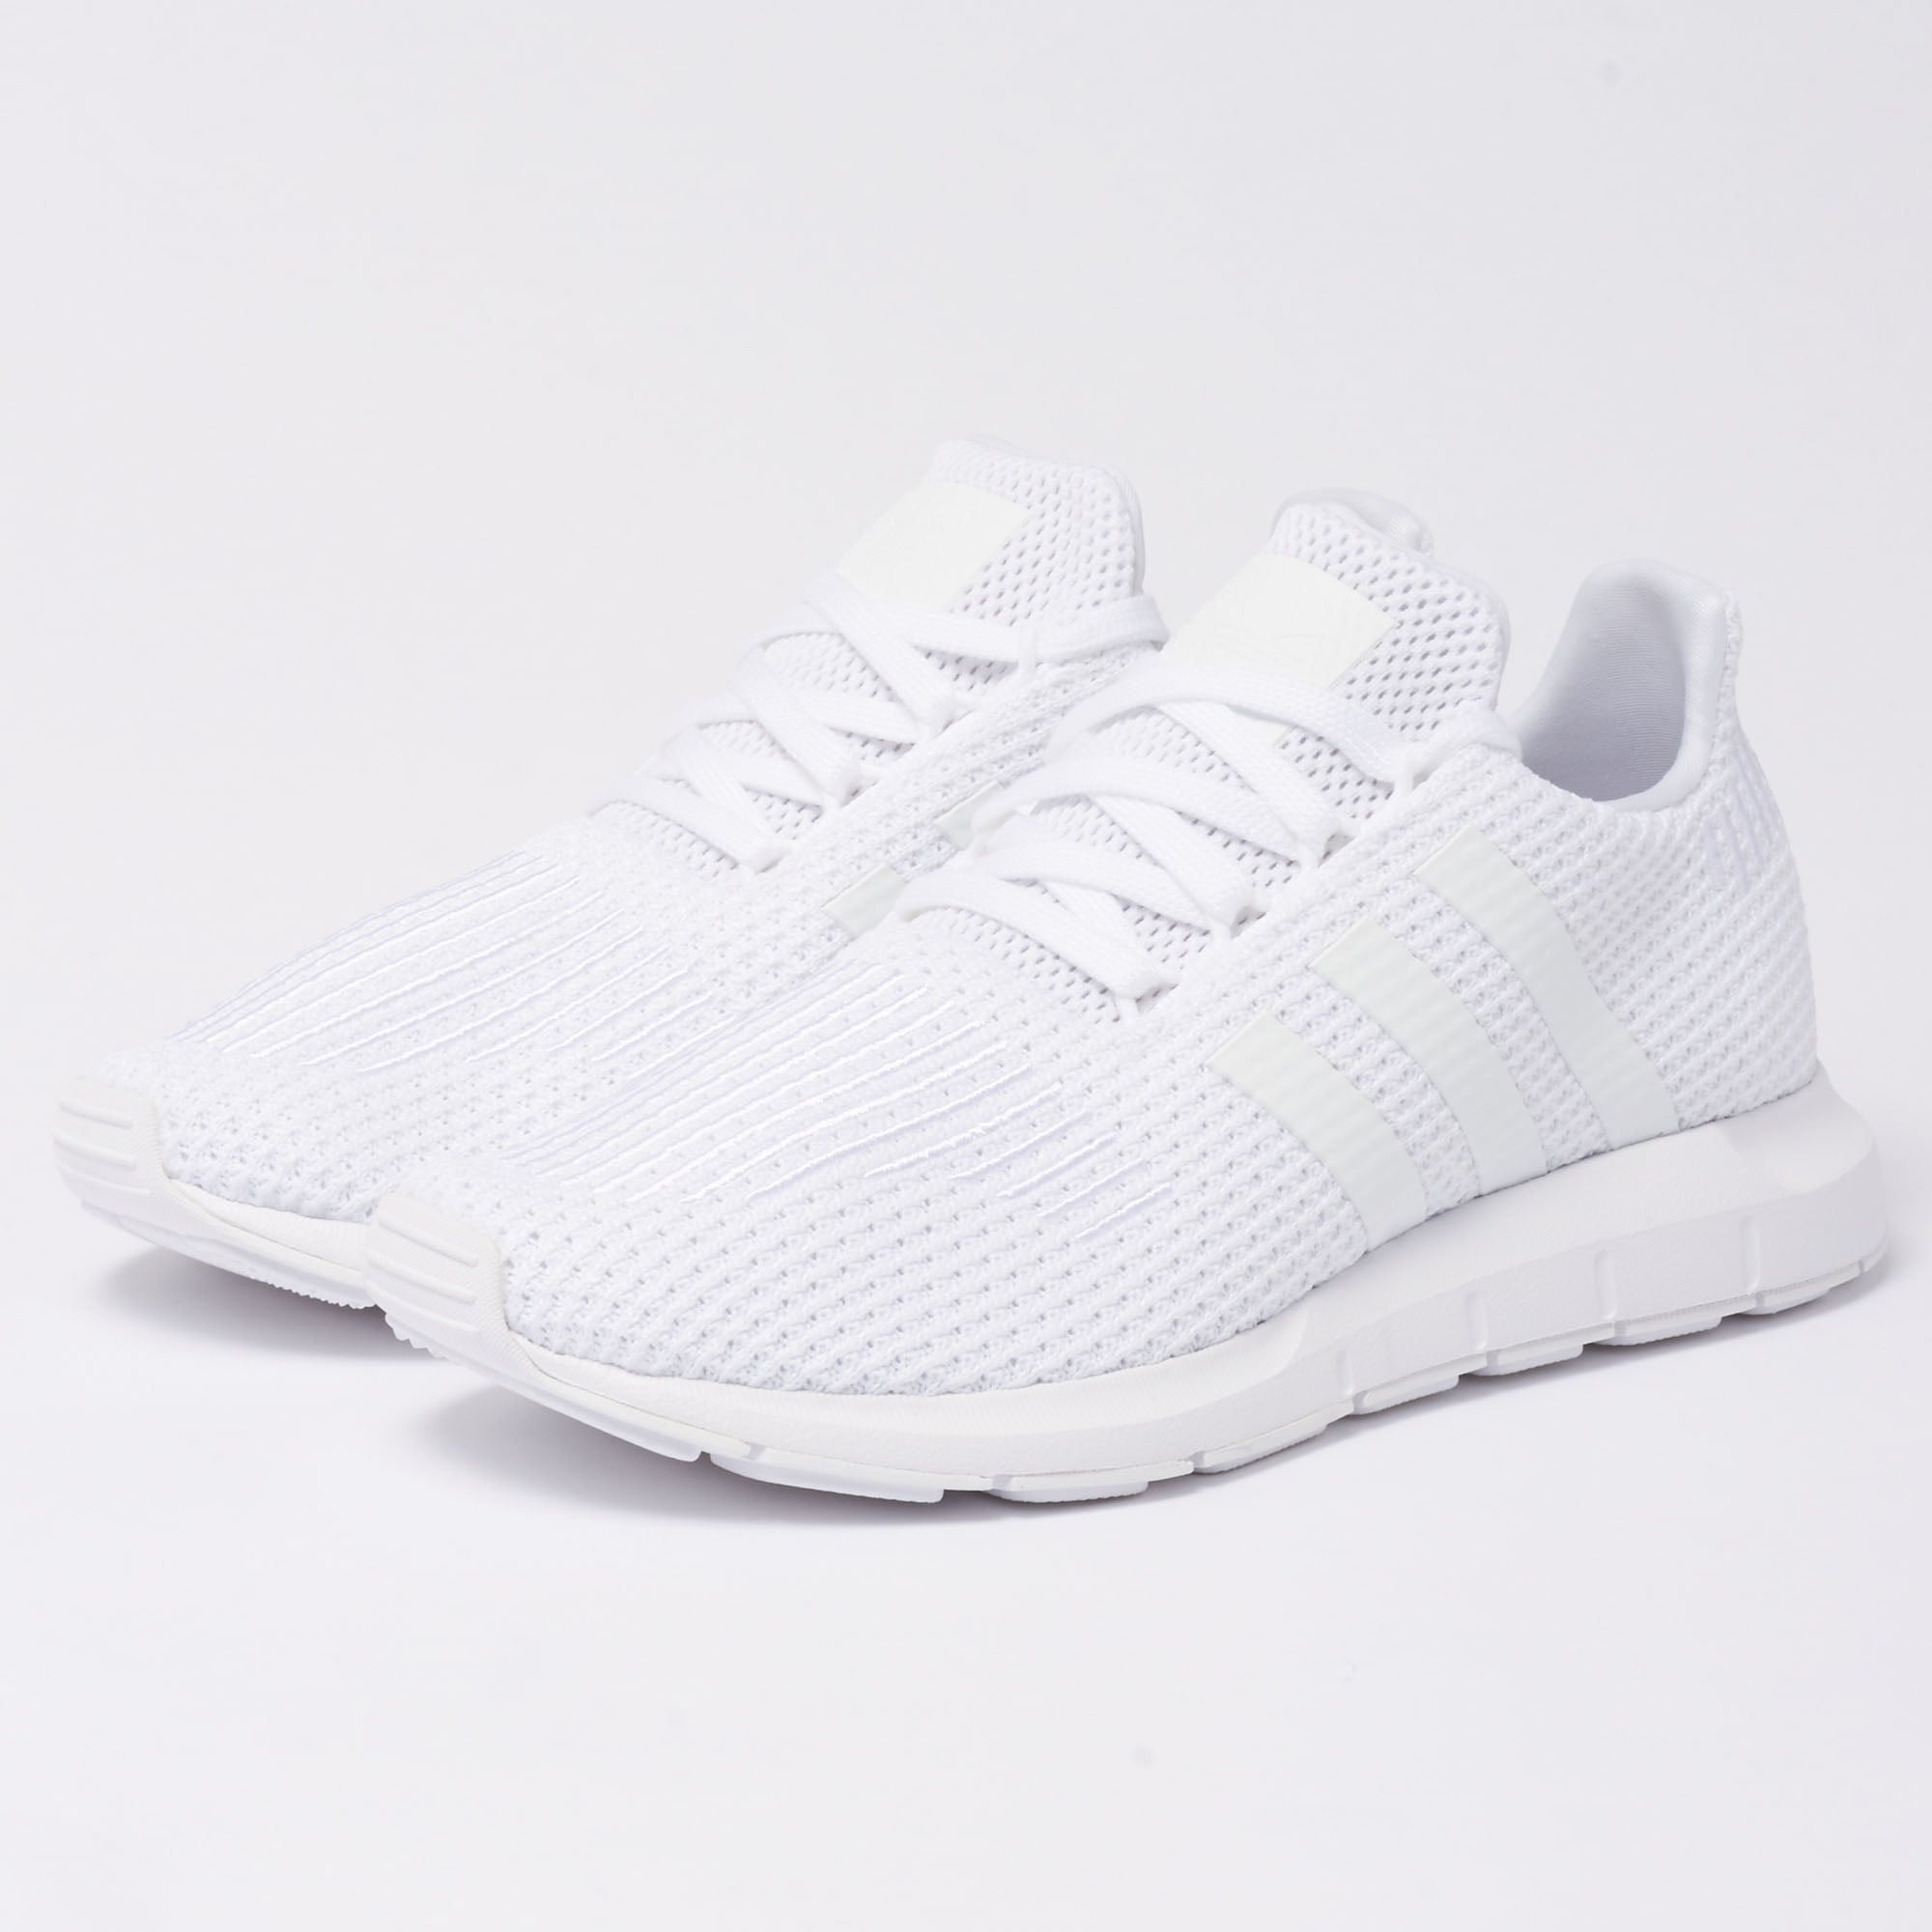 Adidas Swift Run Trainers White,shoes